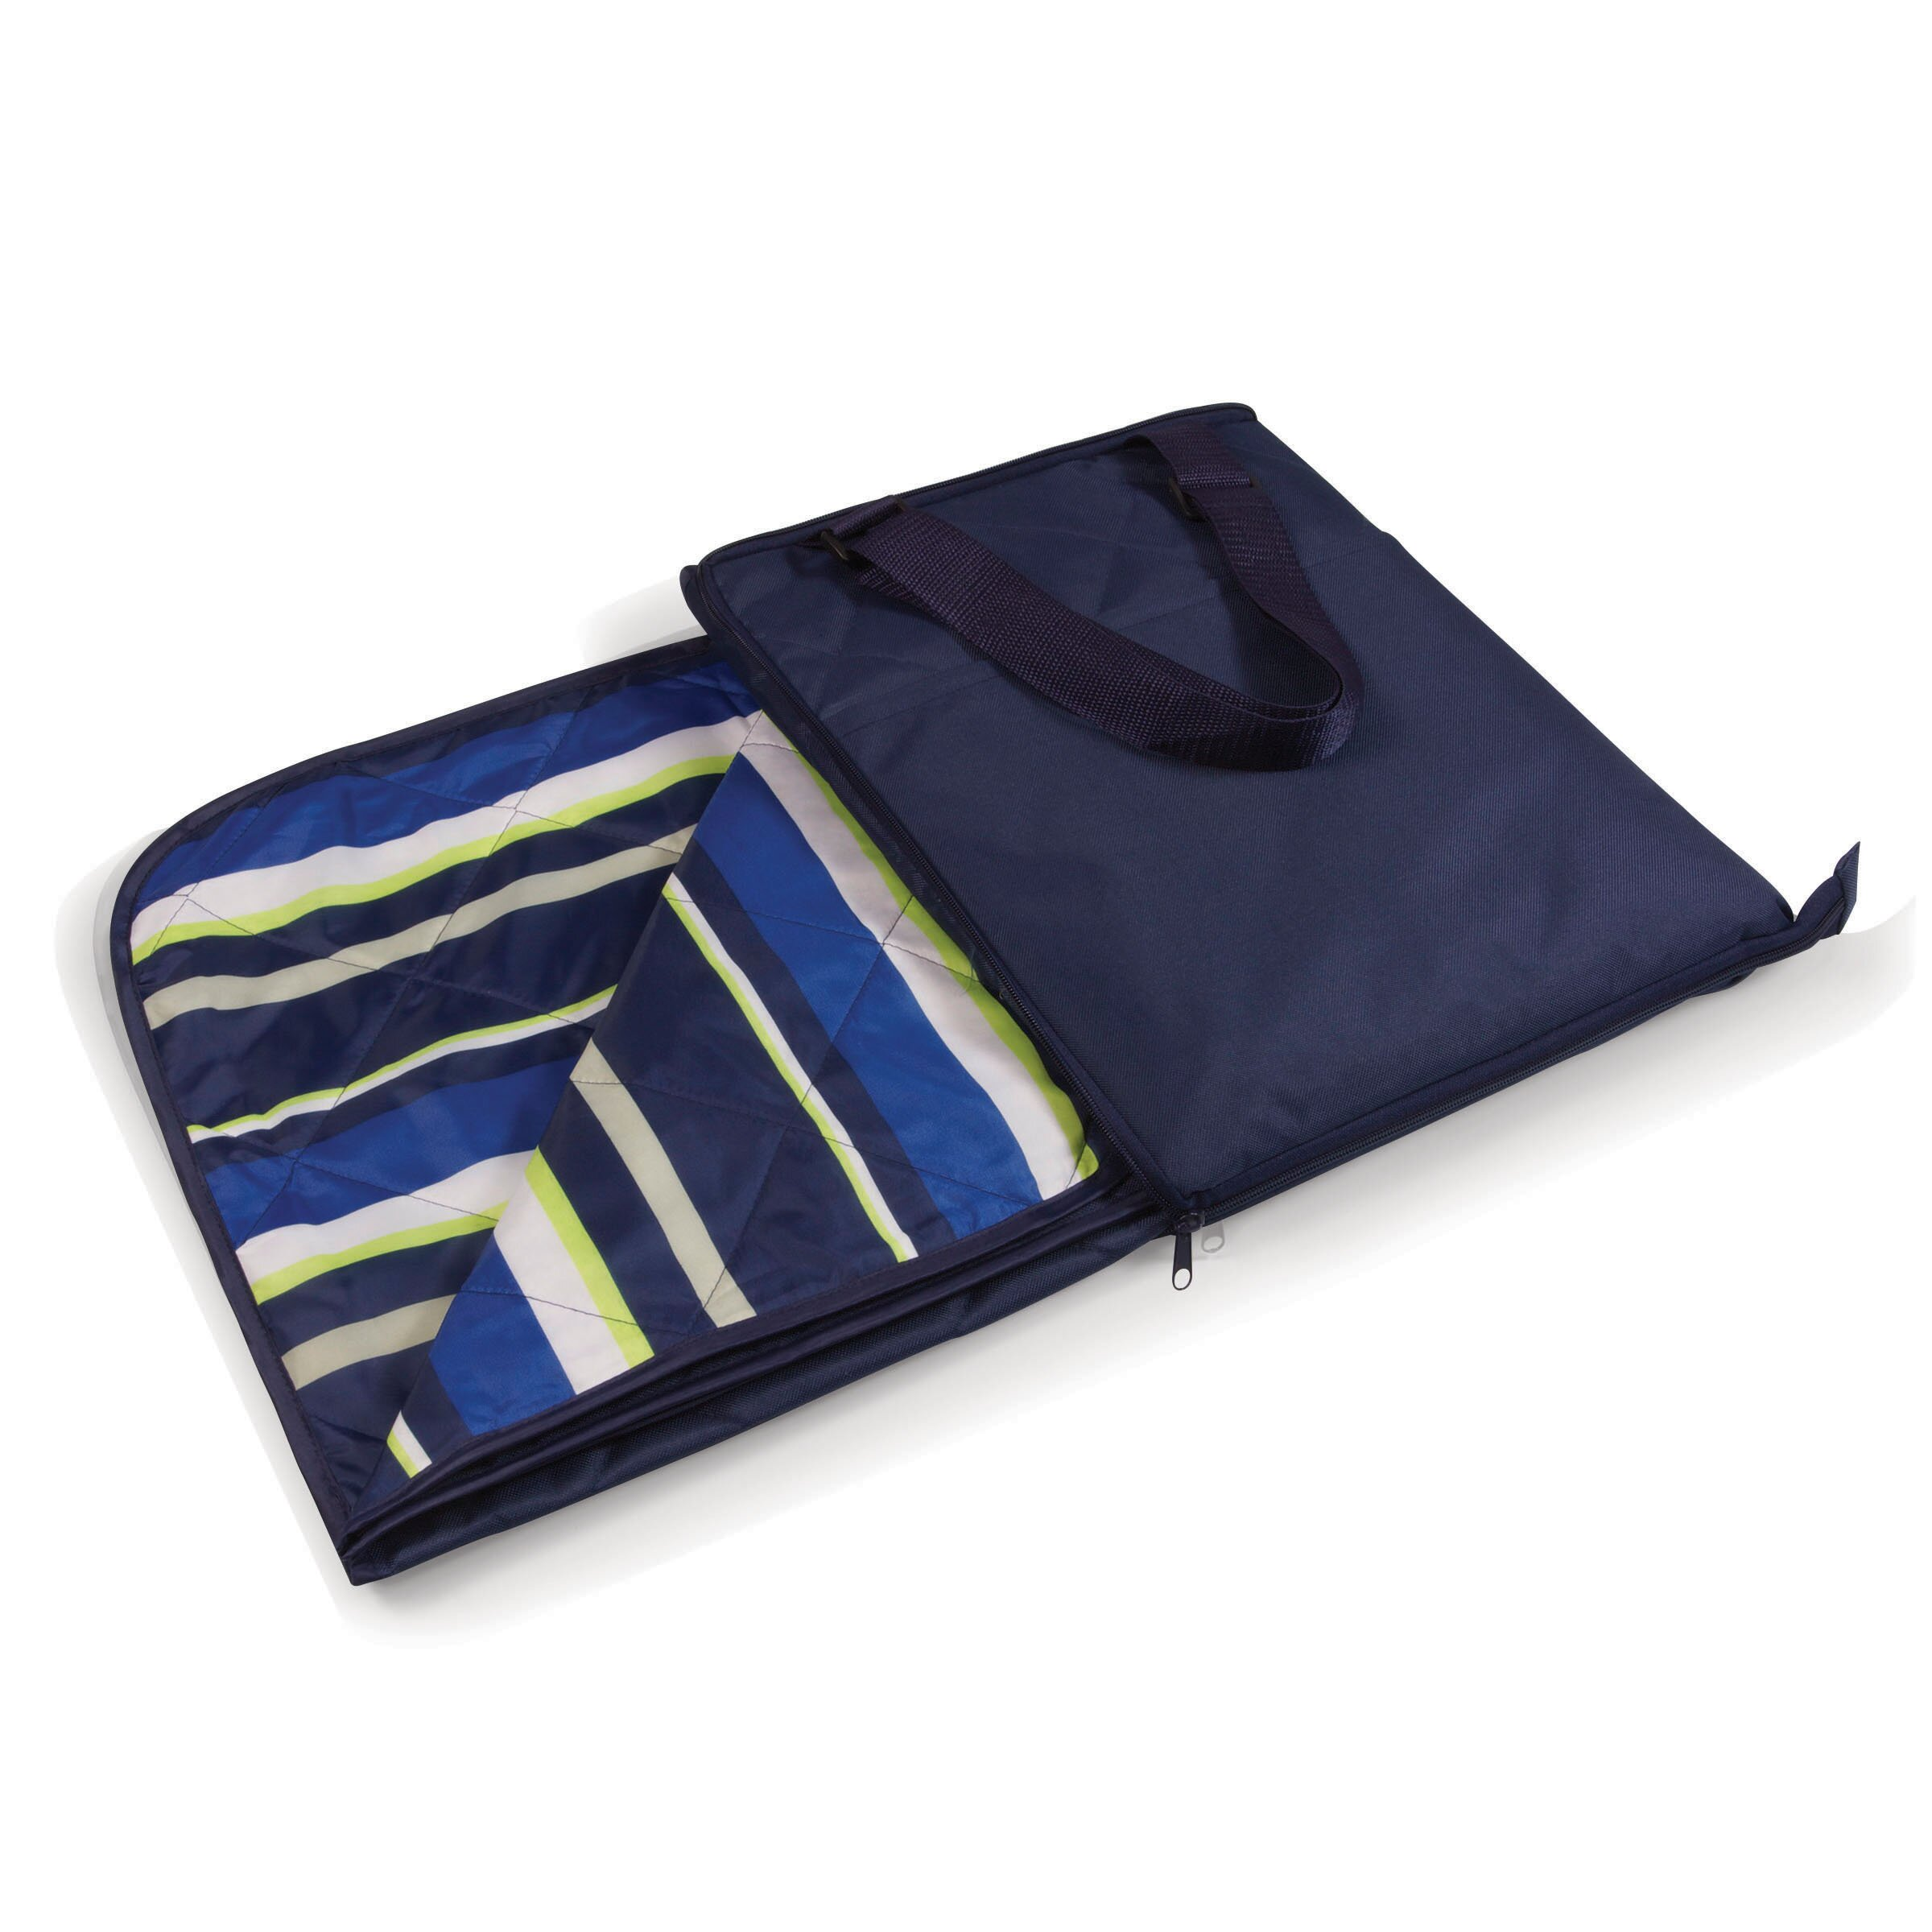 Picnic Time Vista Outdoor Blanket Amp Reviews Wayfair